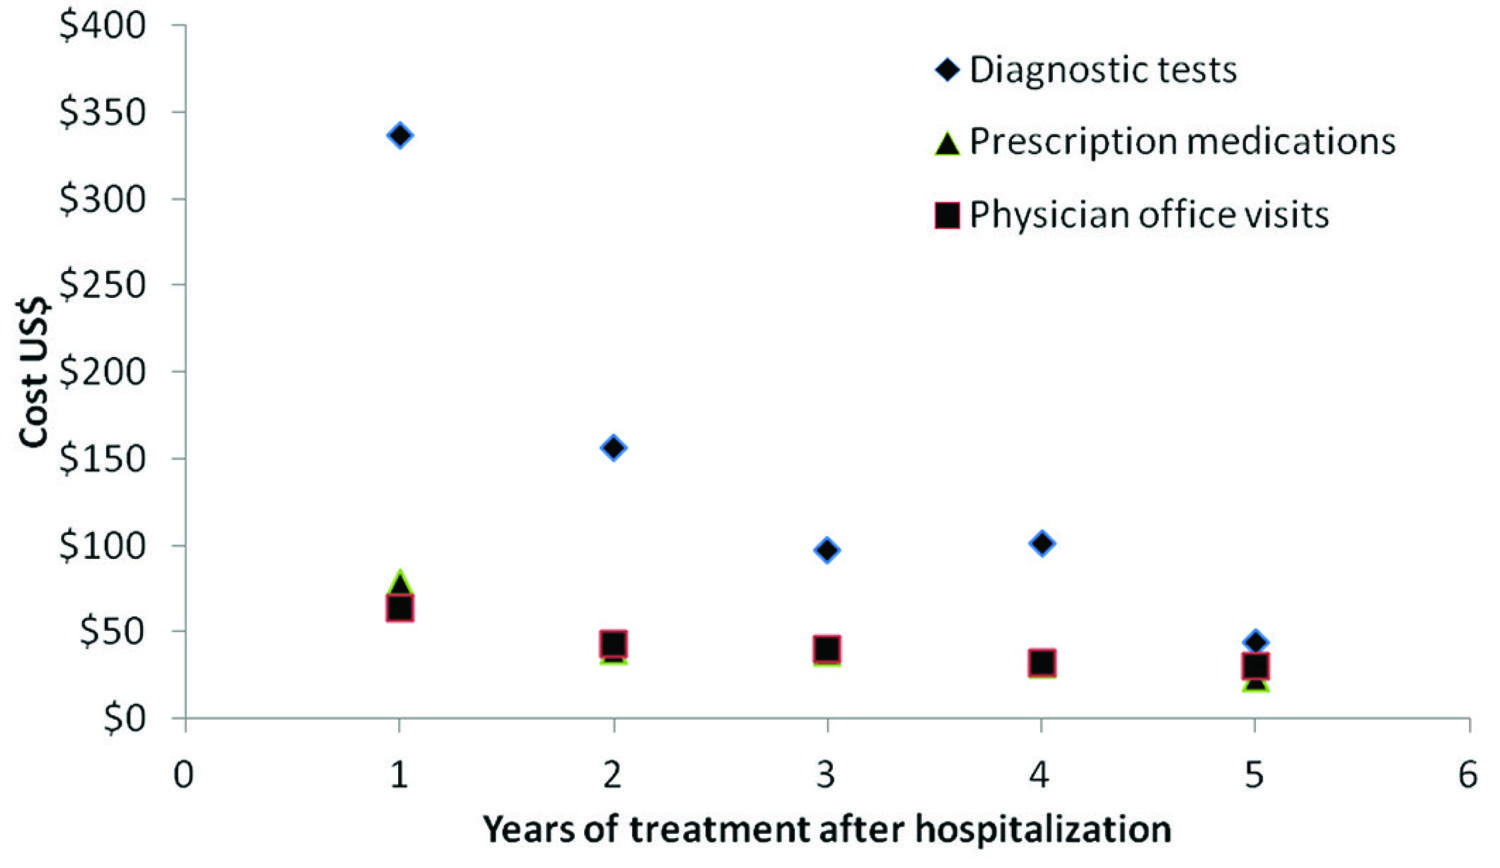 Average costs broken down by cost component and year of treatment post-hospitalization for NCC patients treated at the INNN. Note: There were 86, 55, 41, 26, and 15 patients who received treatment one, two, three, four, and five years post-hospitalization, respectively